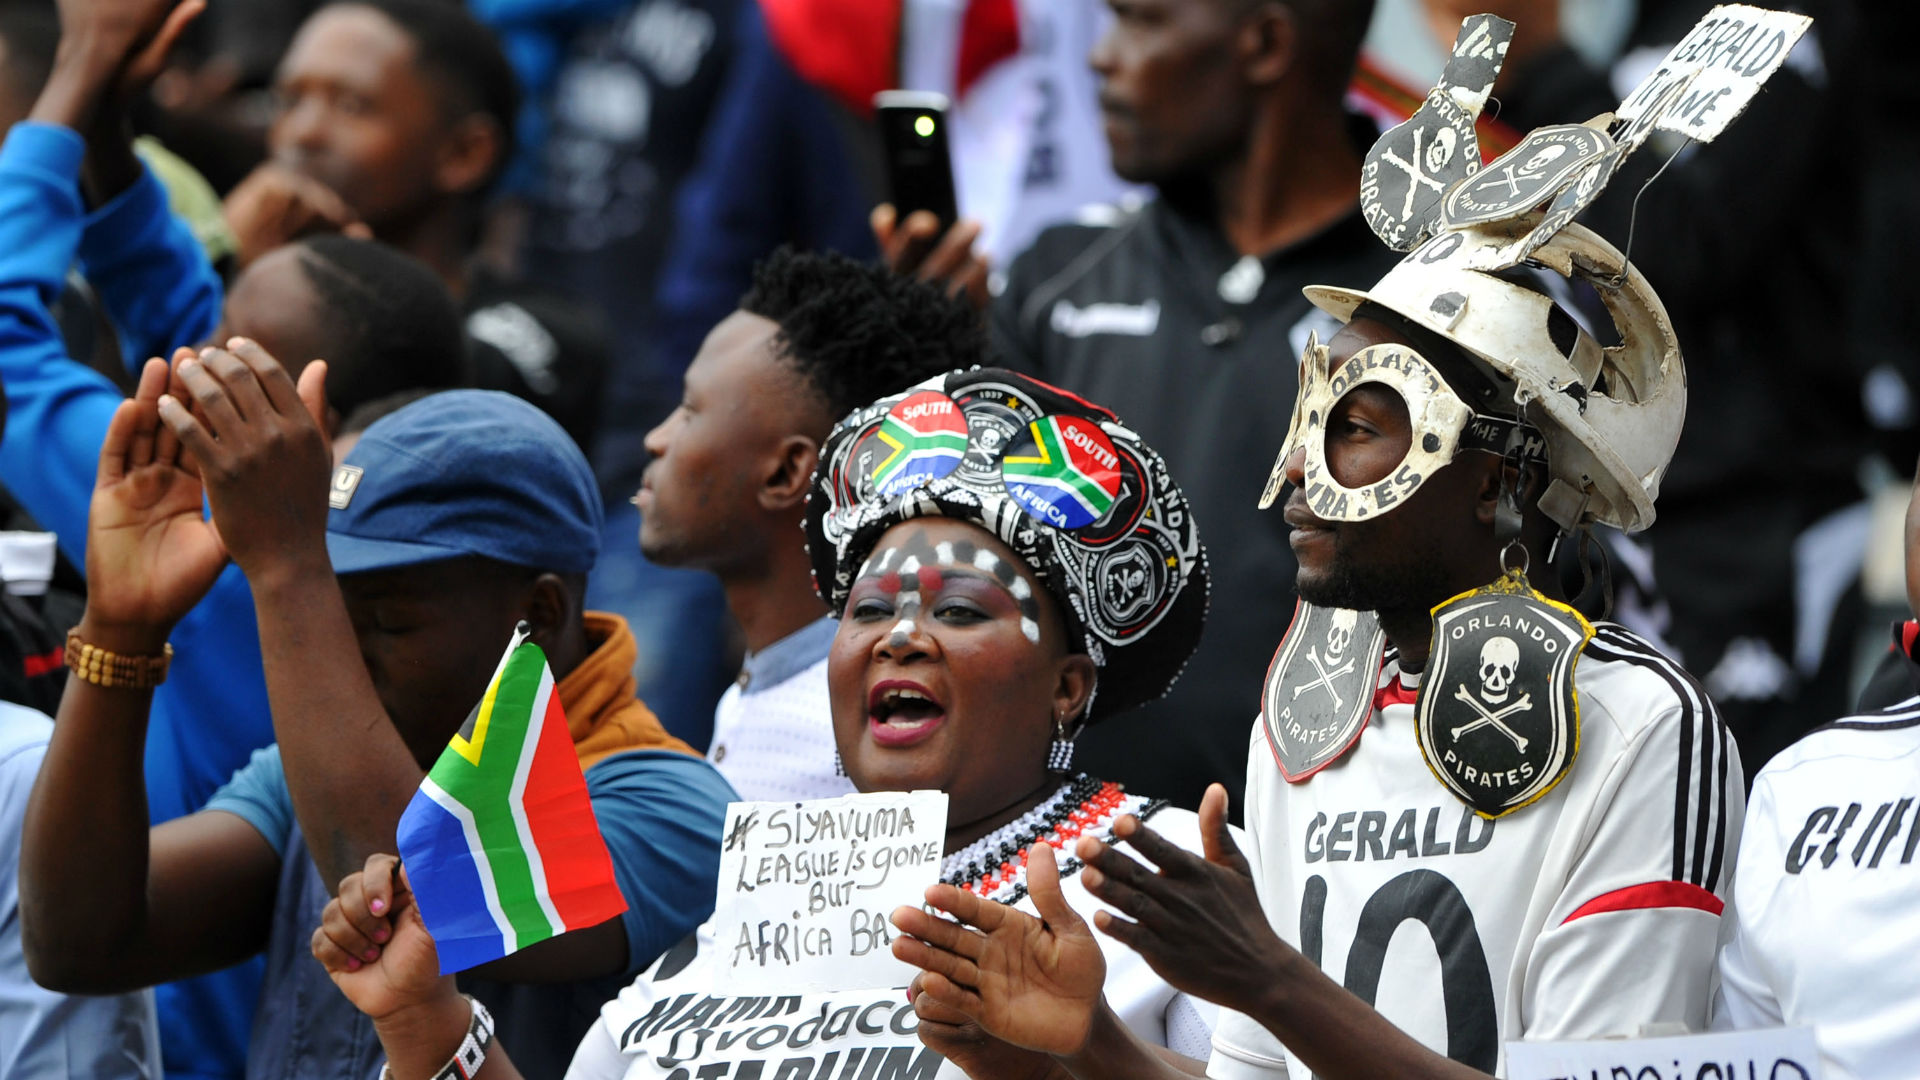 EXTRA TIME: PSL fans joke about Orlando Pirates and Joris Delle after losing to Bidvest Wits